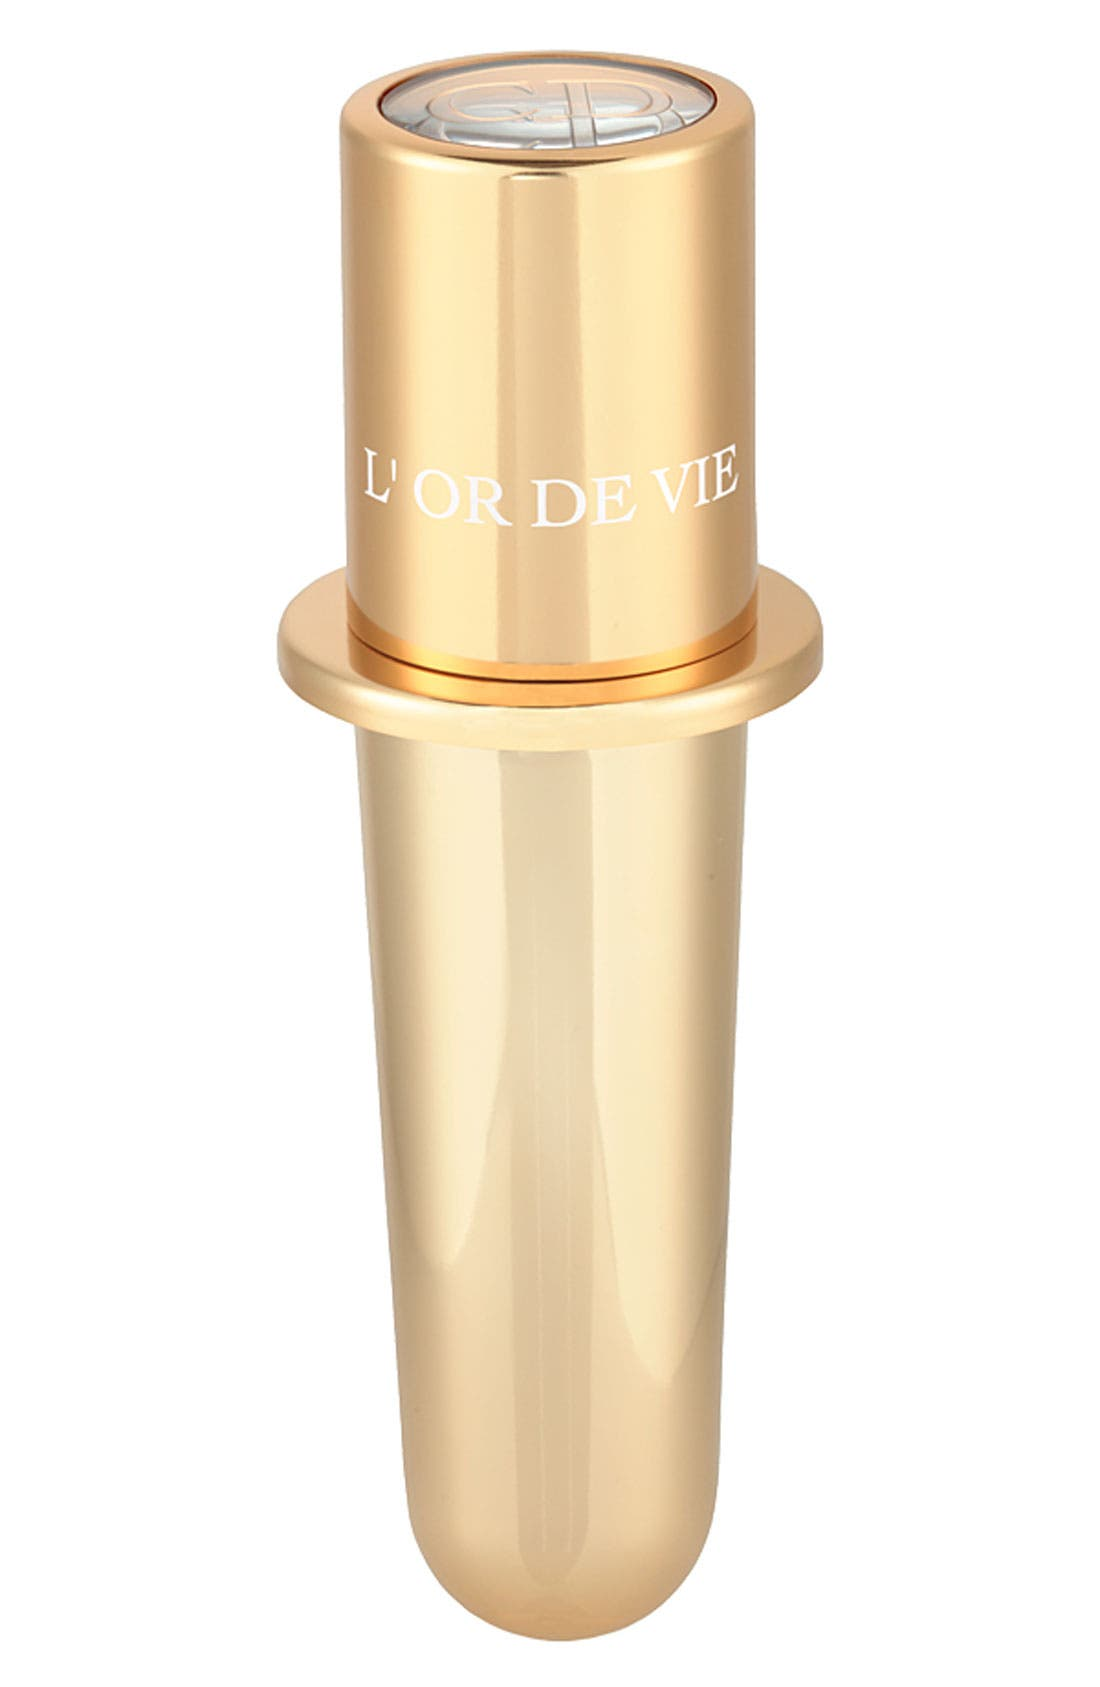 Dior 'L'Or de Vie' Serum Refill